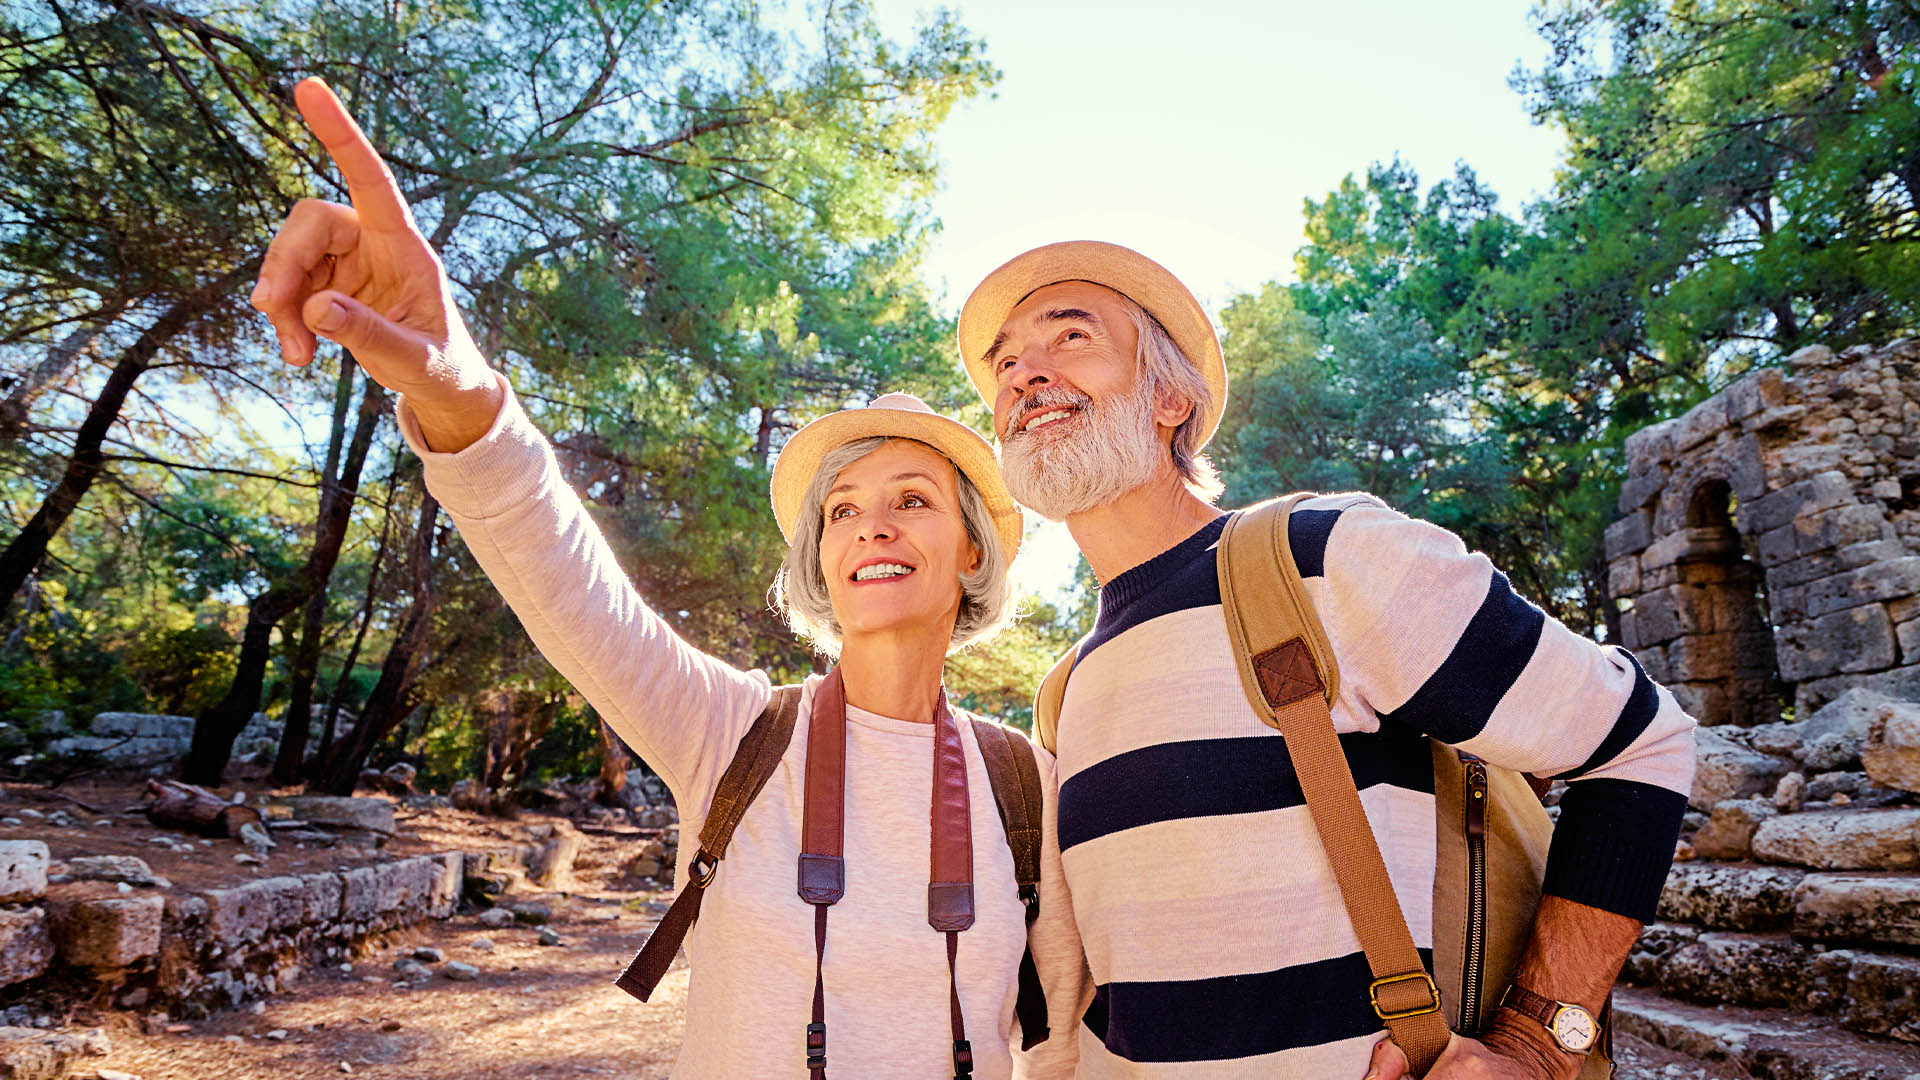 An older couple wearing hats and backpacks, the woman with a camera around her neck, enjoying nature while out on a hike.